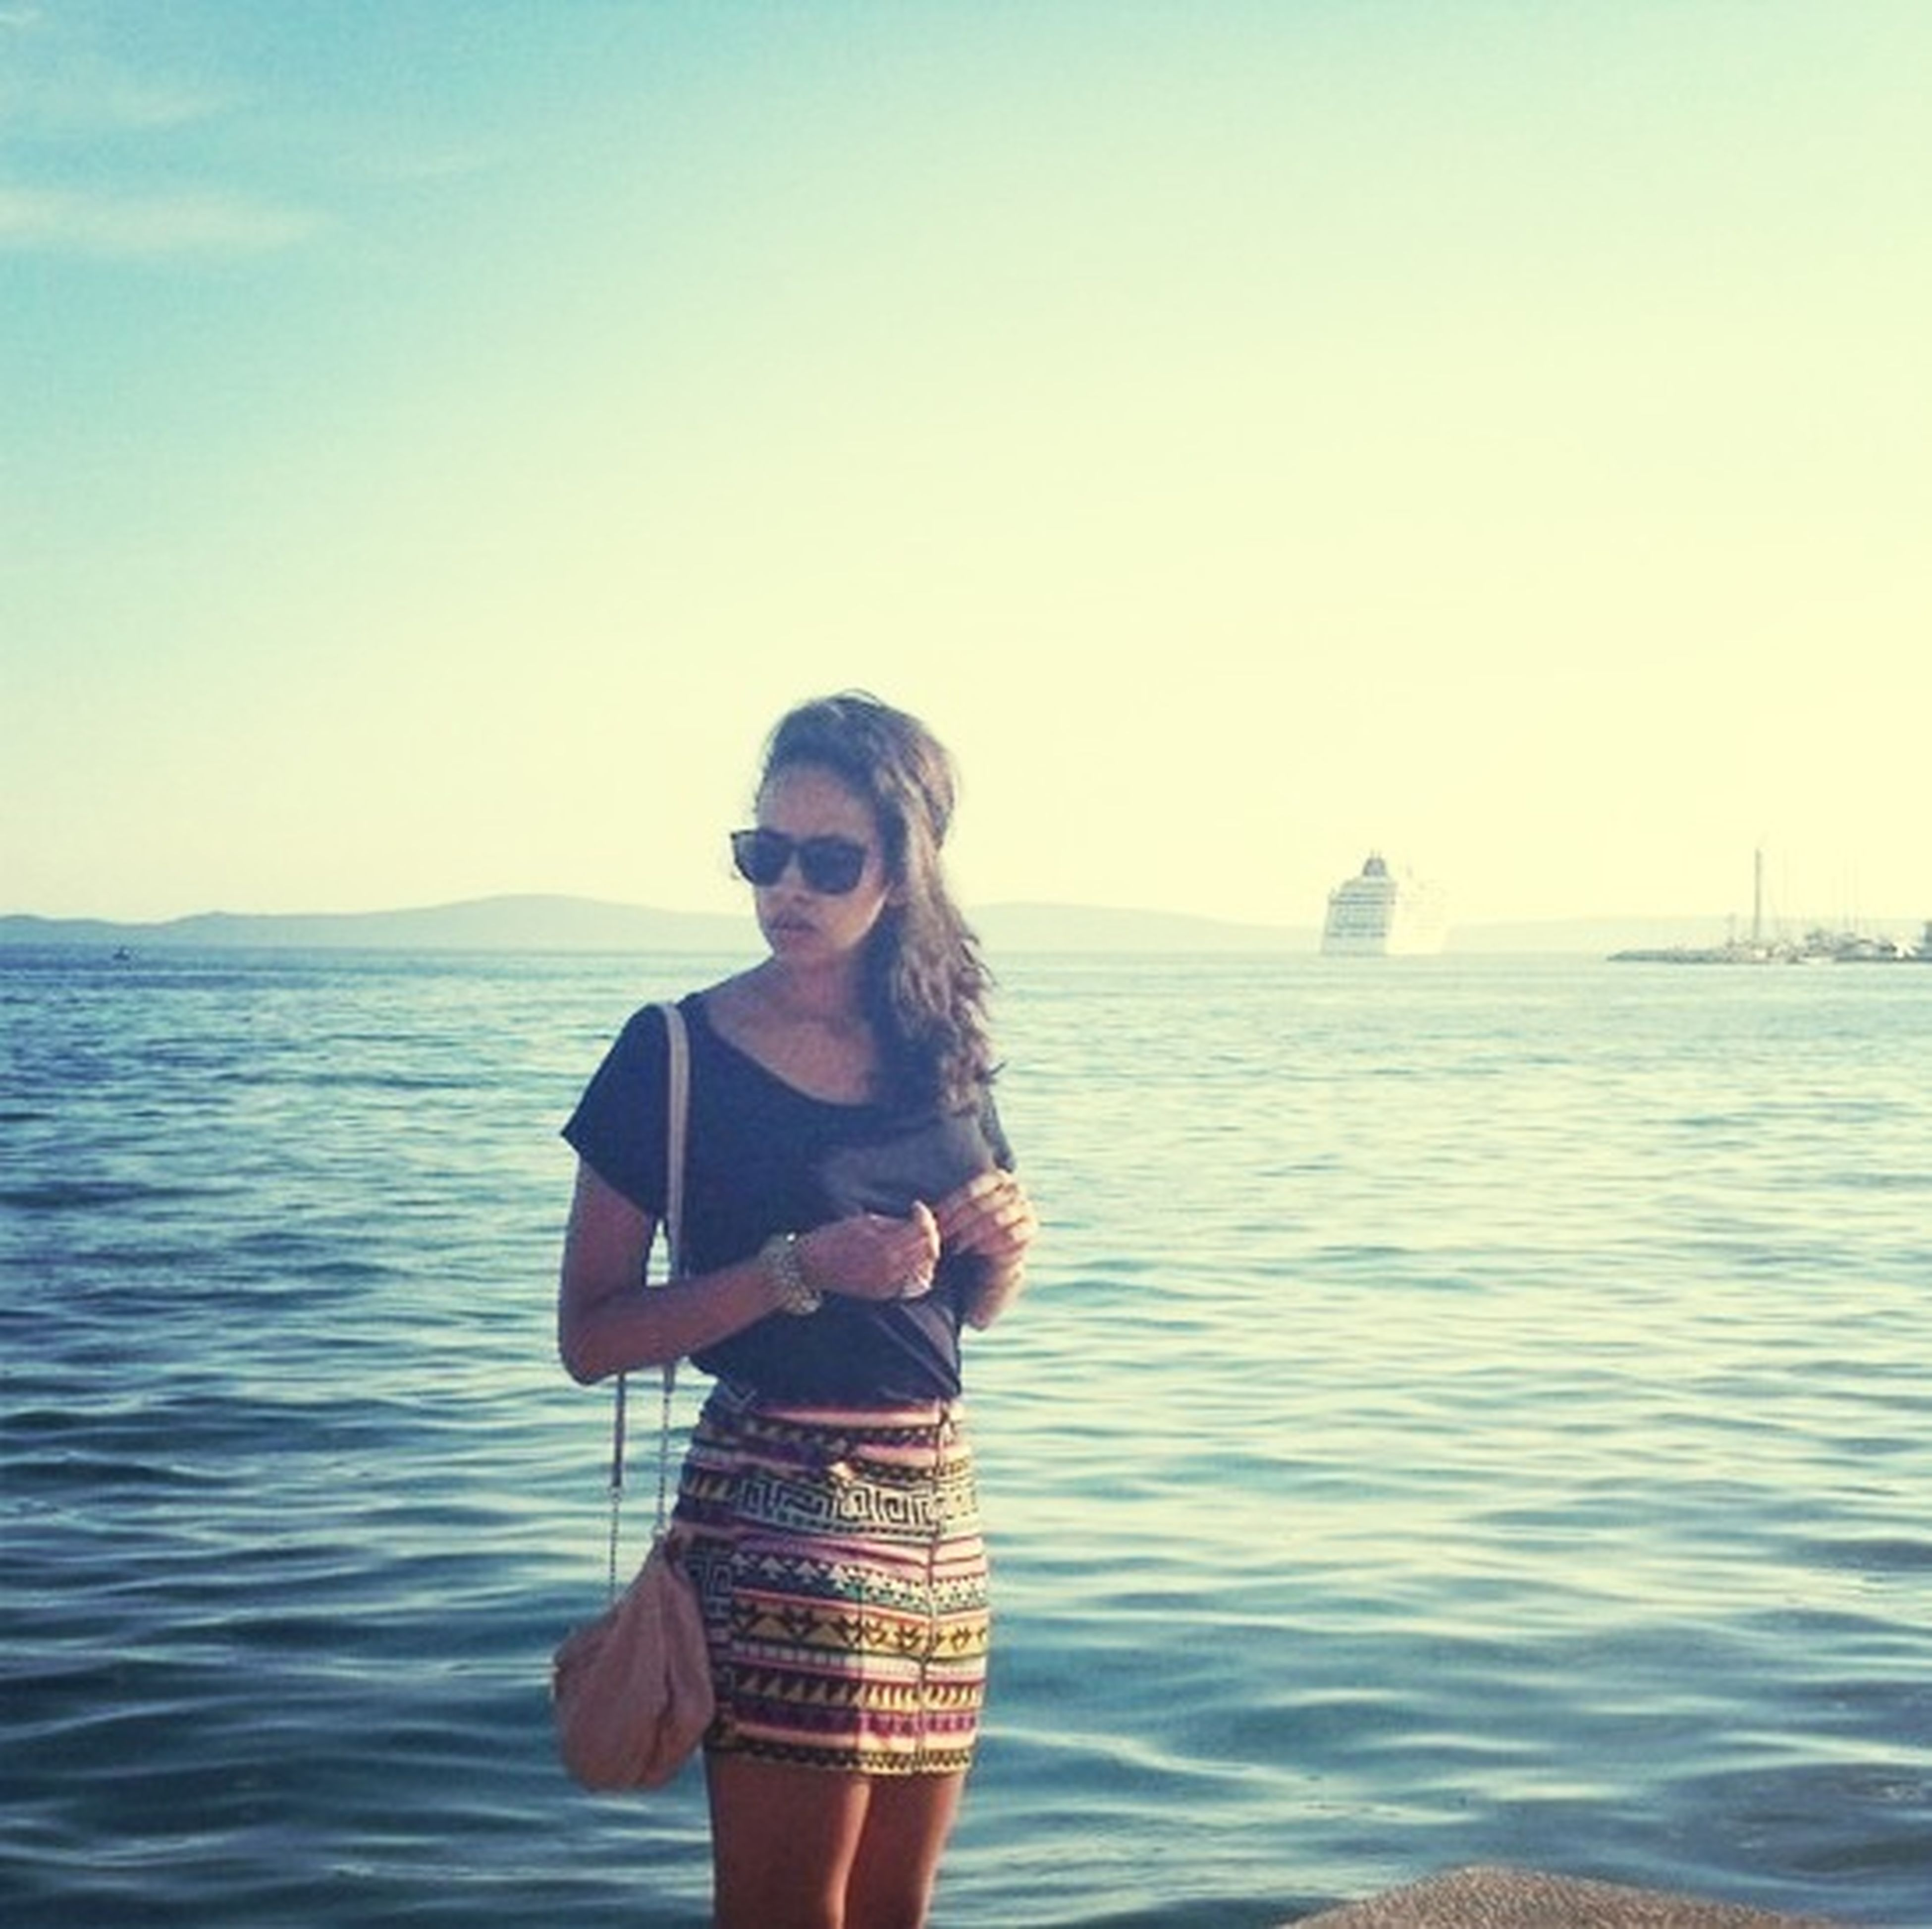 water, sea, lifestyles, leisure activity, young adult, standing, person, clear sky, casual clothing, three quarter length, copy space, waterfront, horizon over water, young women, front view, looking at camera, waist up